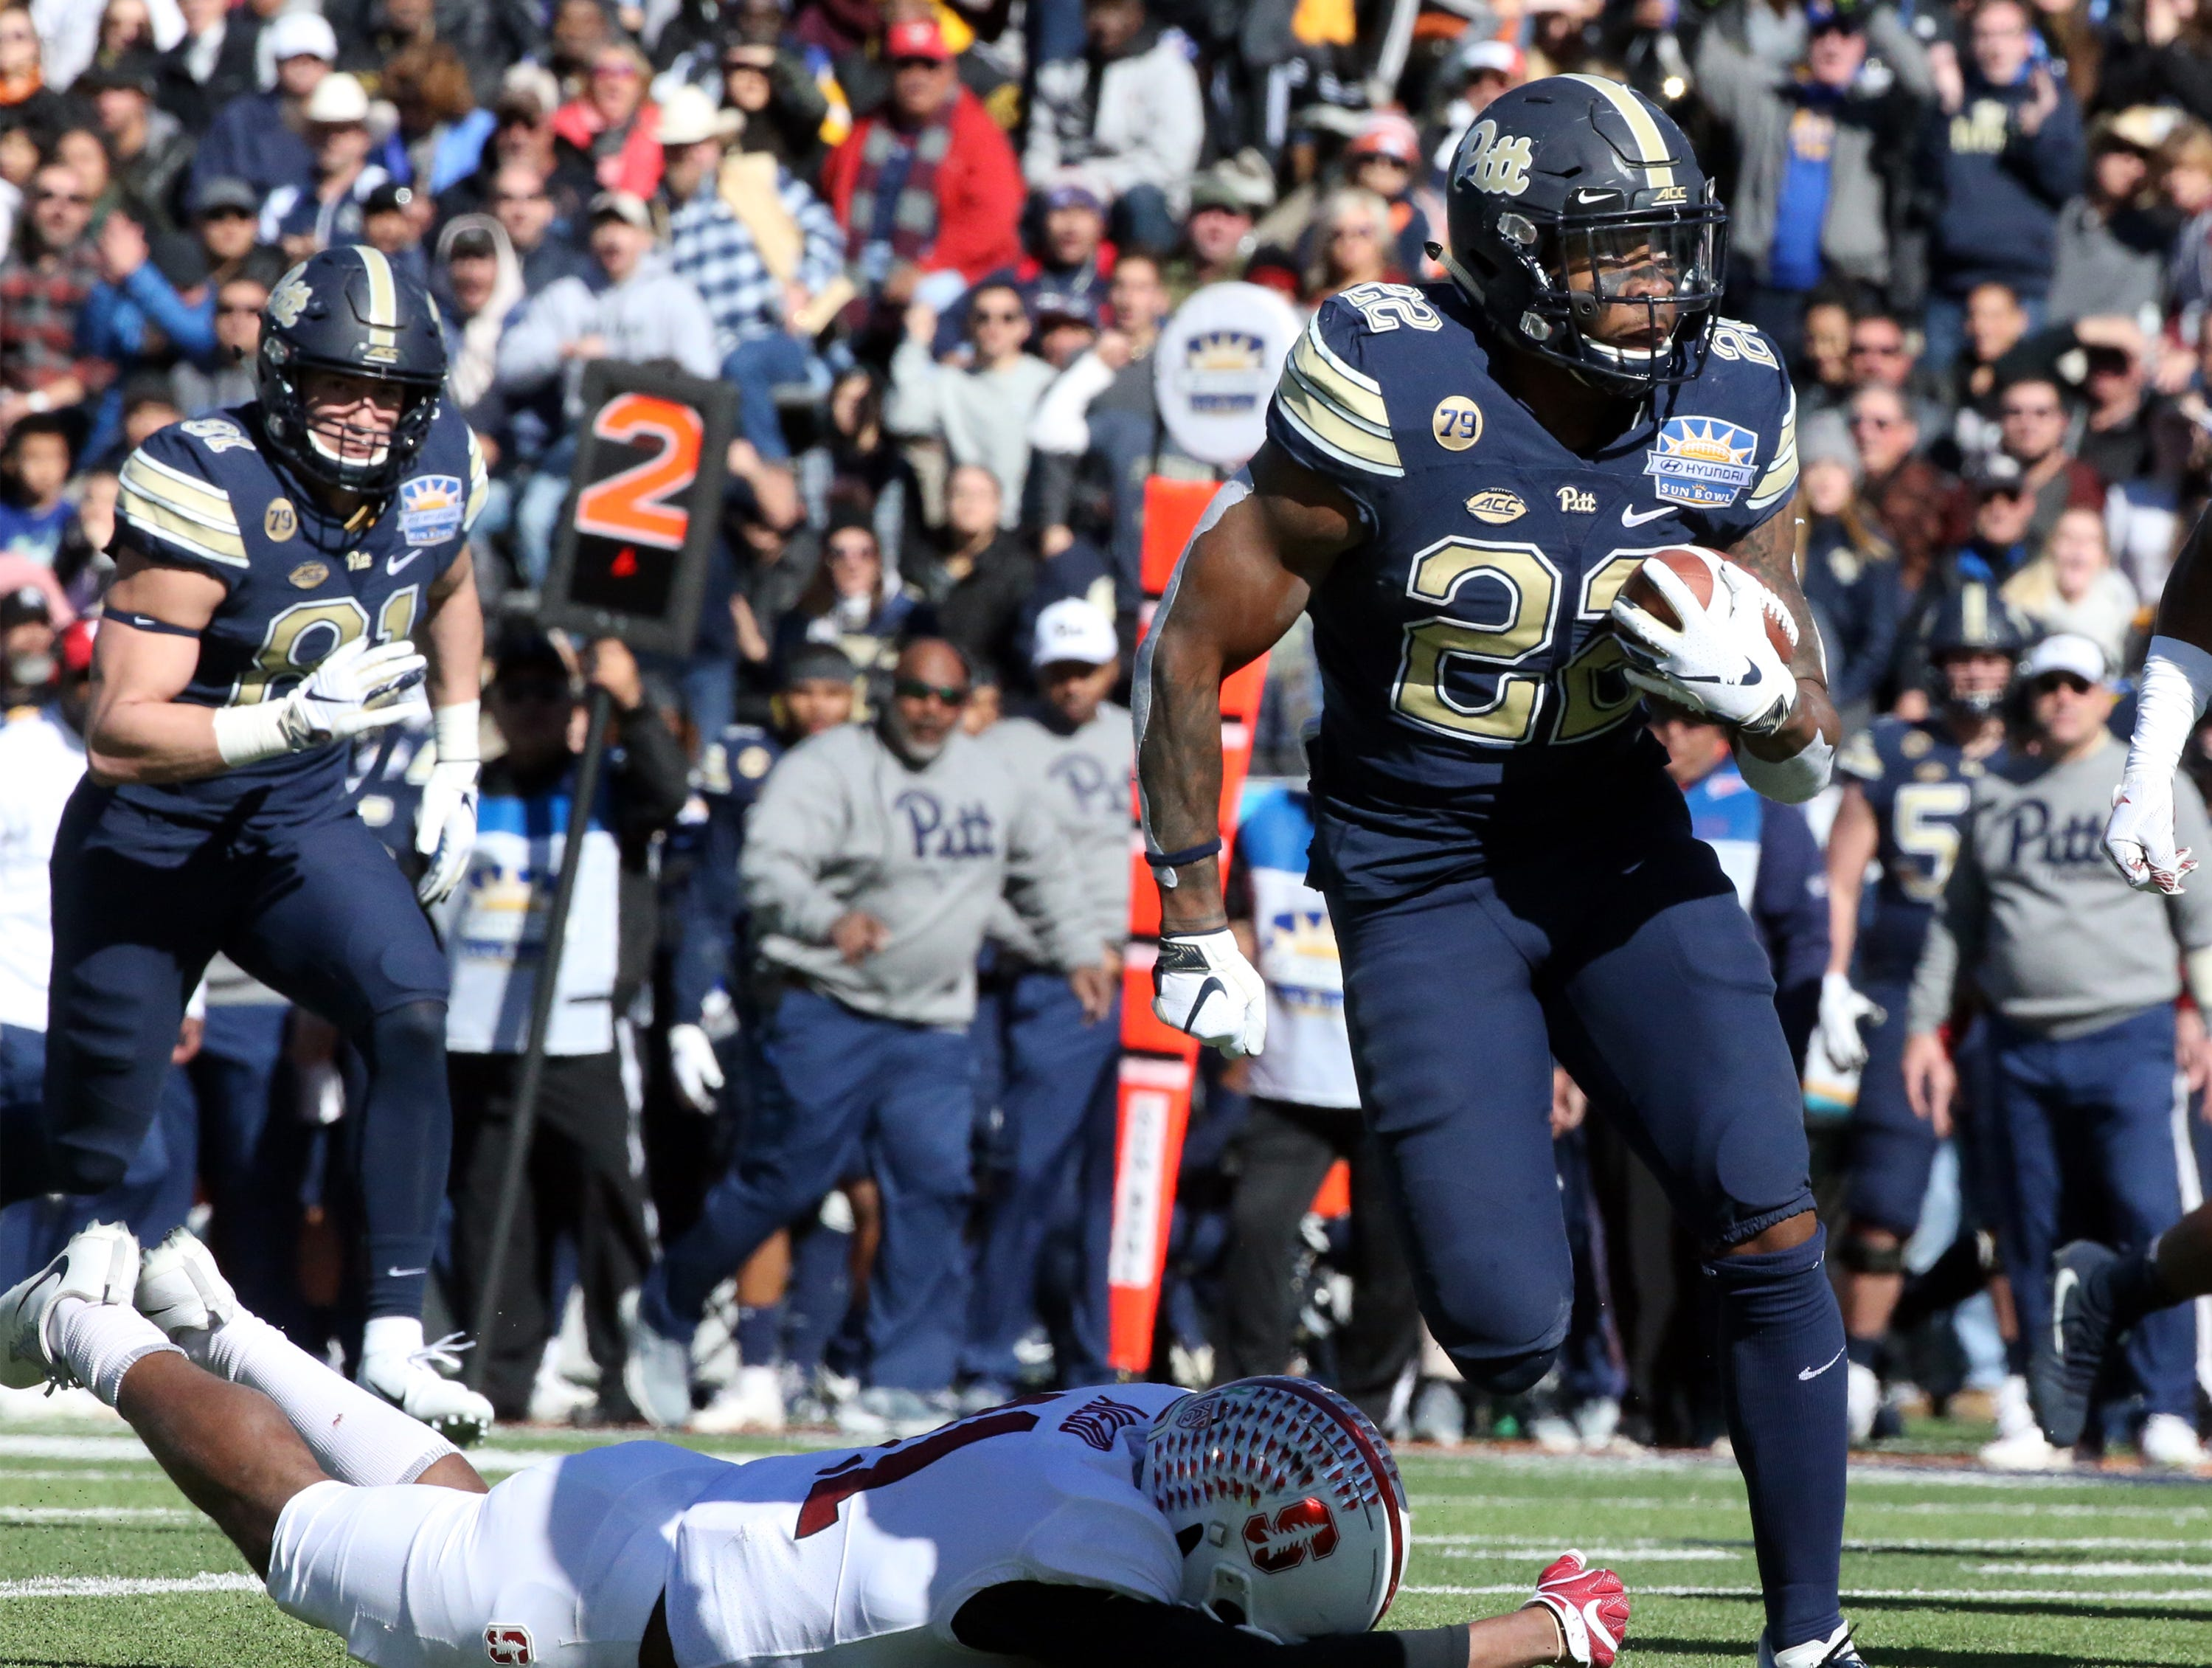 Pitt tail back Darrin Hall, 22, finds running room against Stanford Monday.